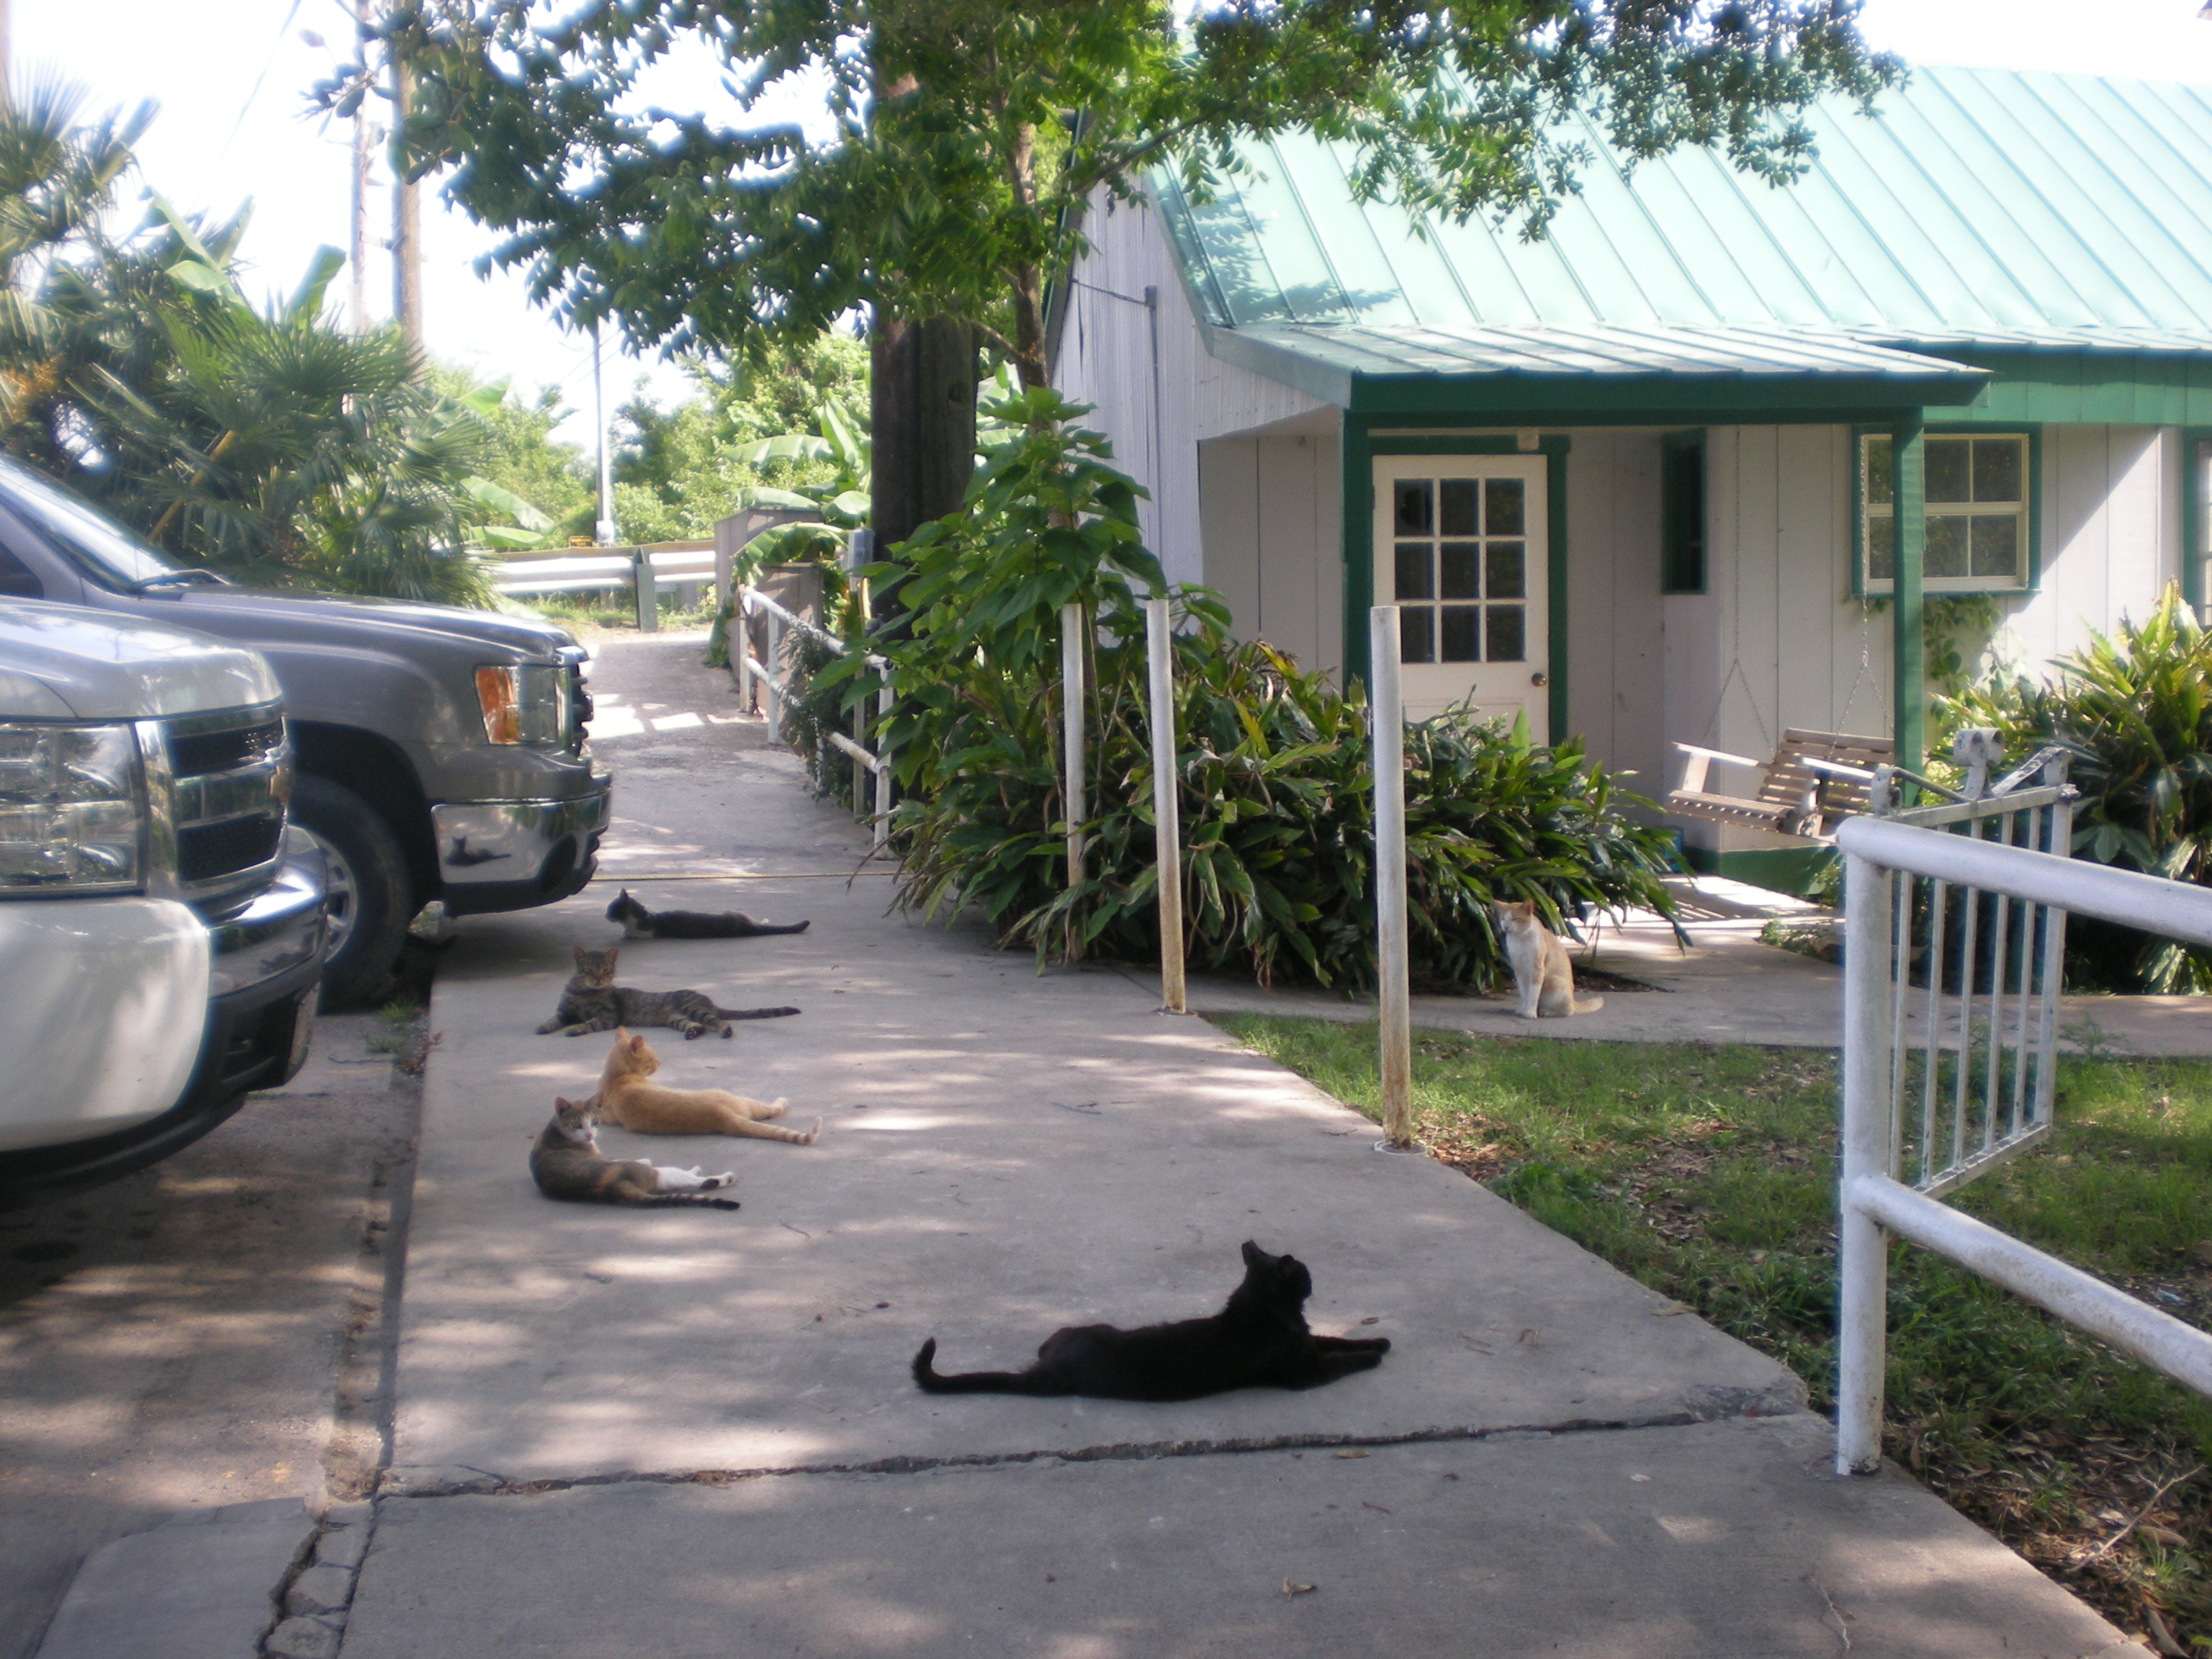 Cats, Cats, and More Cats outside the Seafood Restaurant